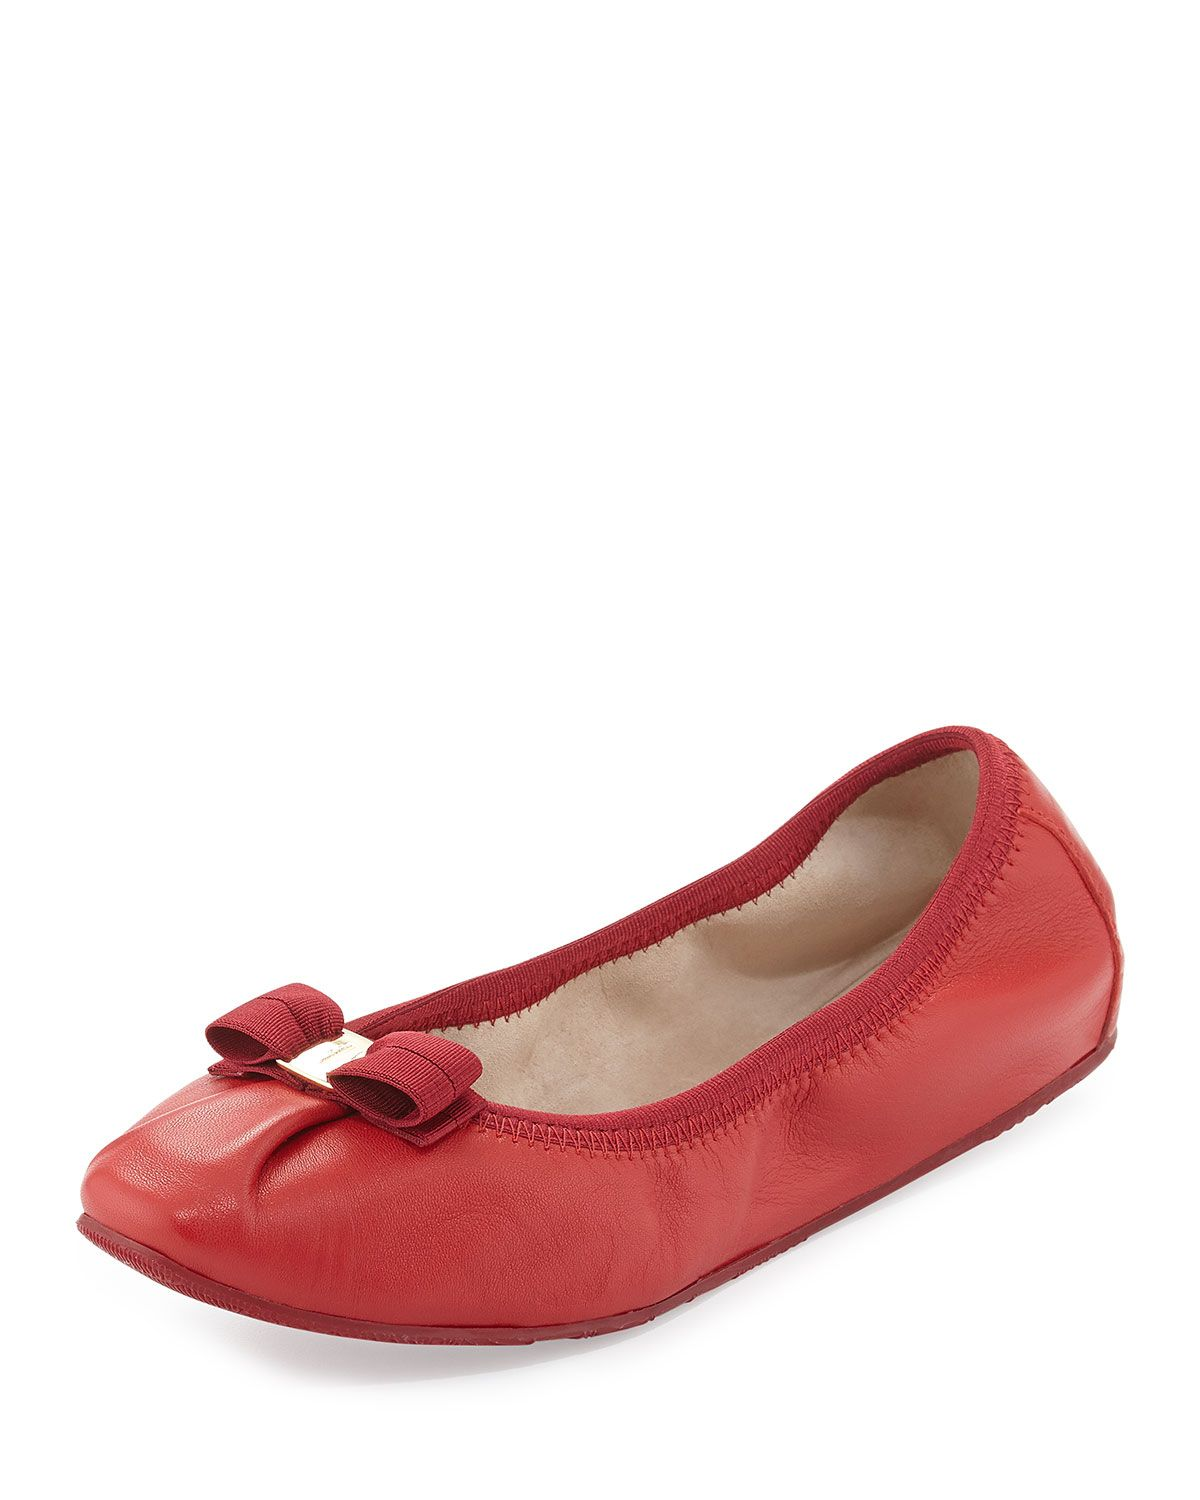 Salvatore Ferragamo My Joy Leather Ballerina Flat, Rosso (Red)